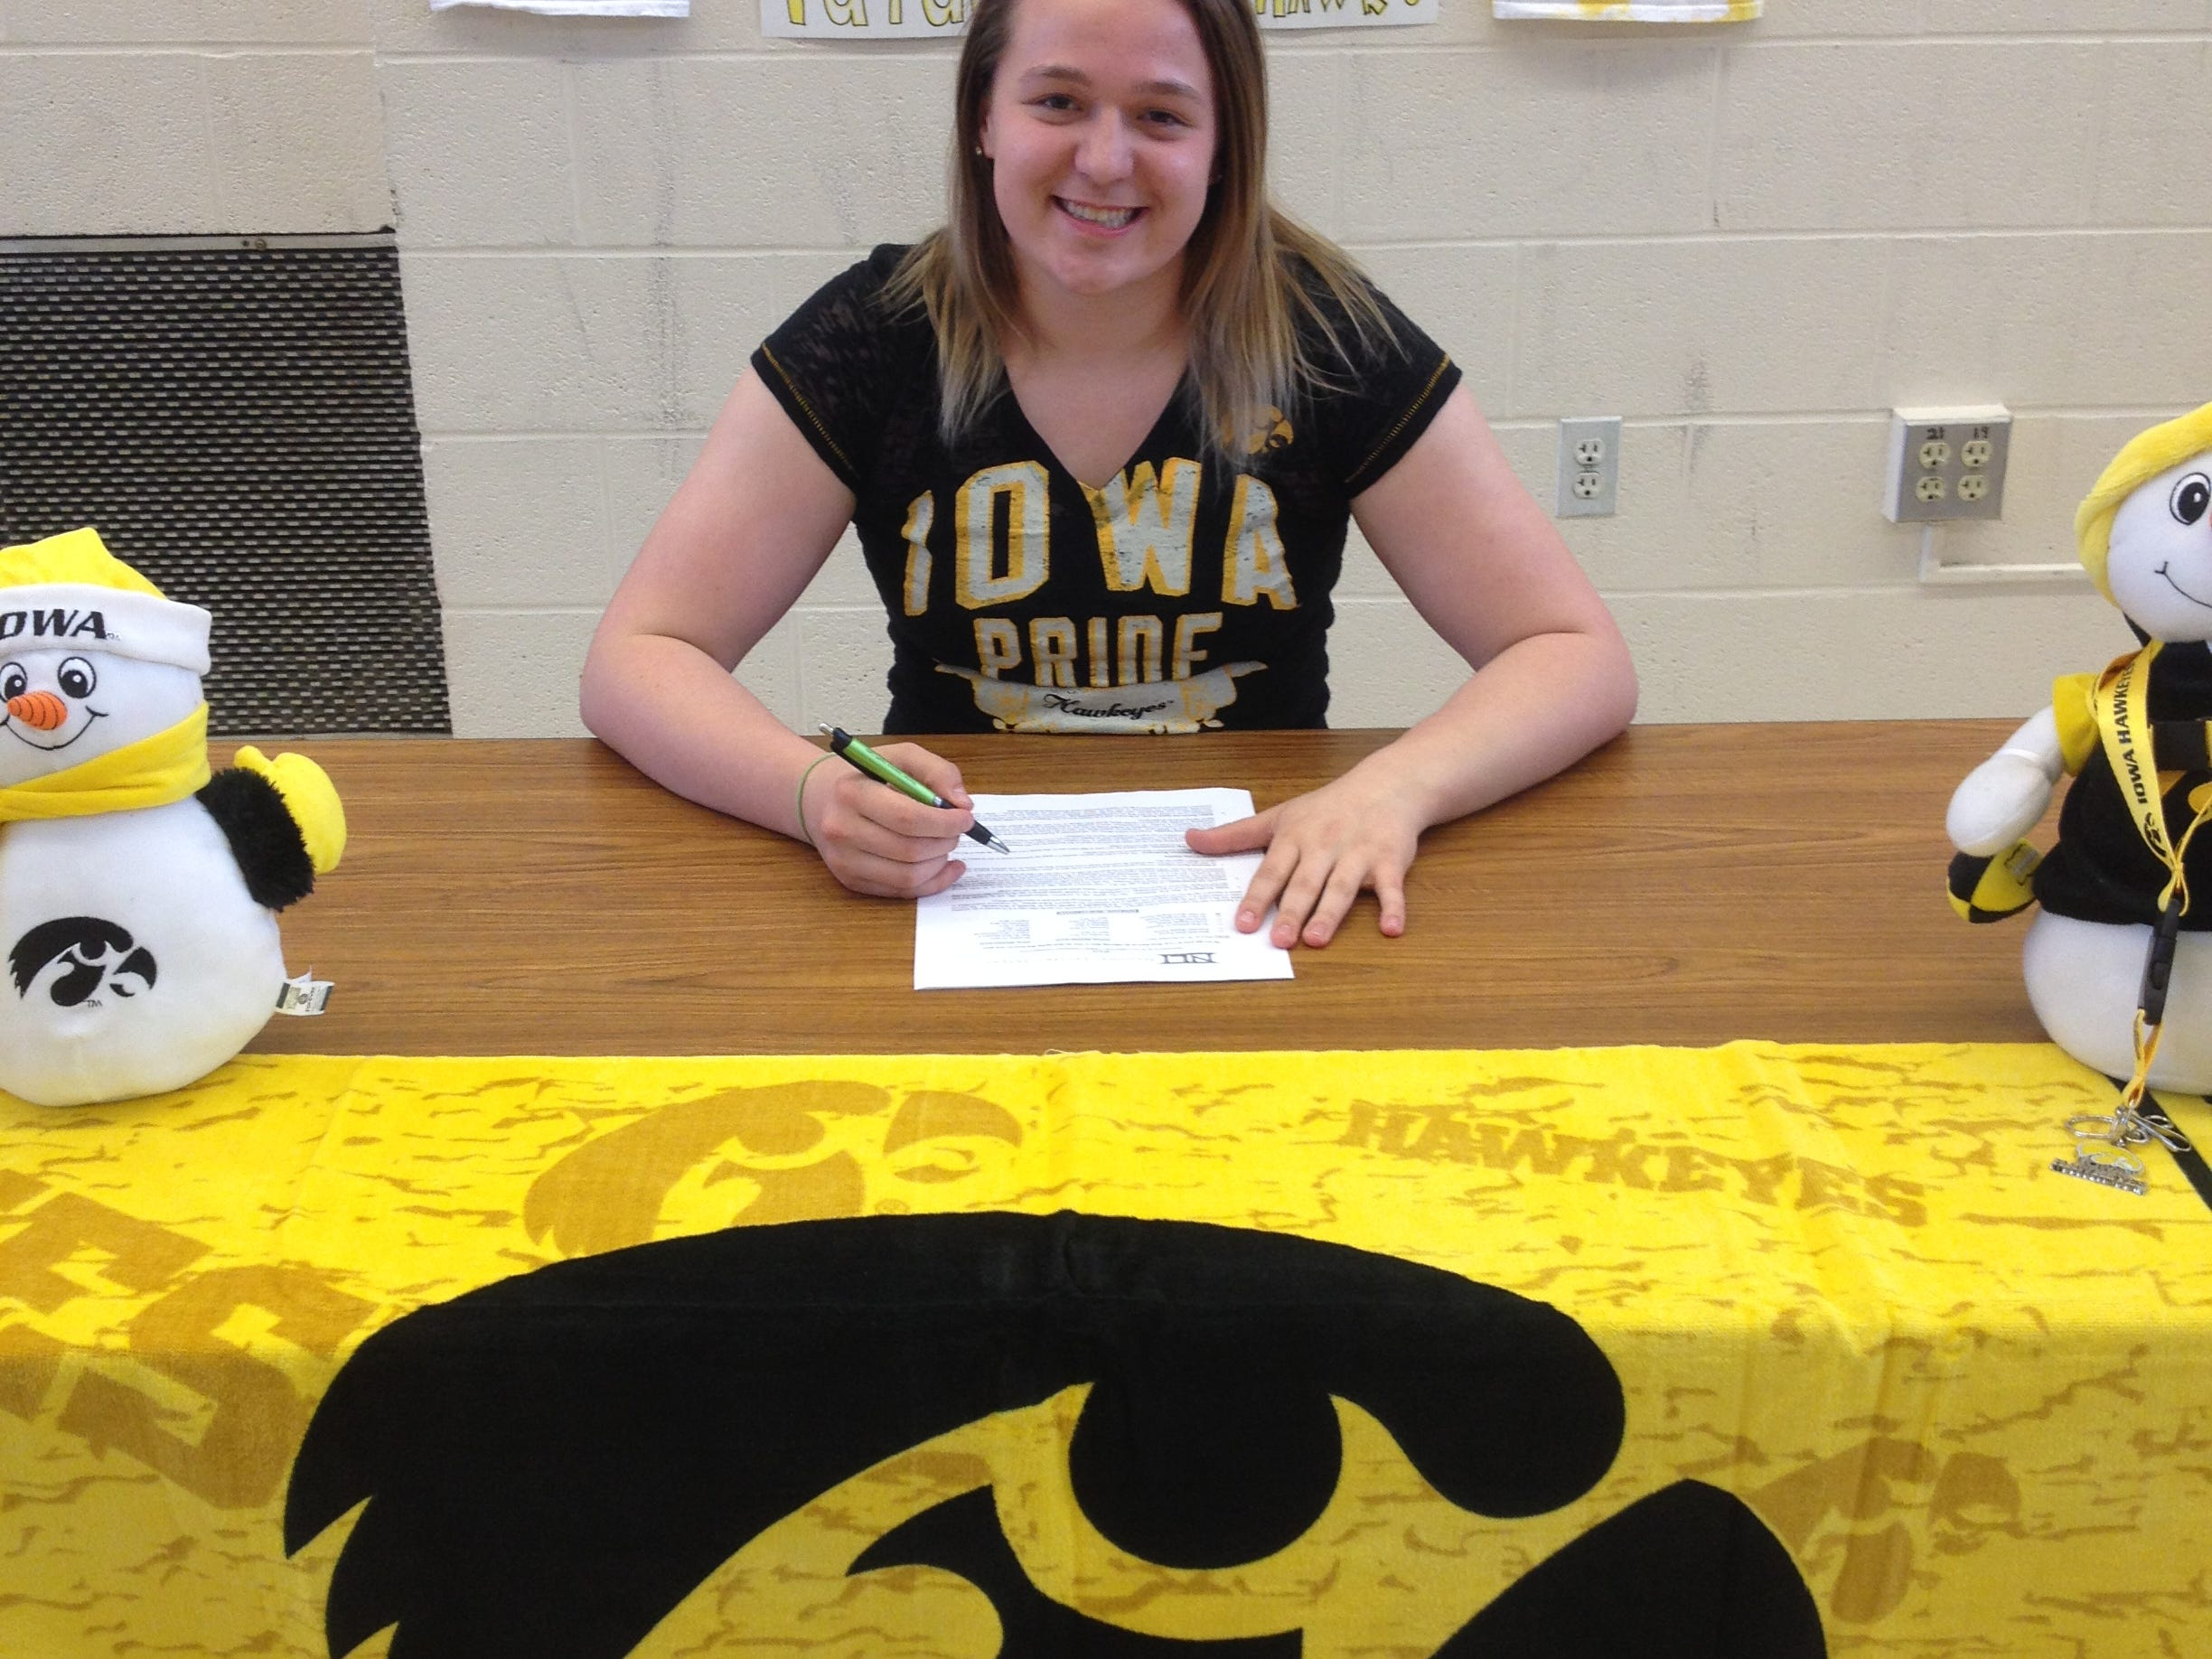 West High senior diver Jacintha Thomas signed a National Letter of Intent with Iowa on Wednesday. Thomas broke a state meet record with 561.10 total points last November.